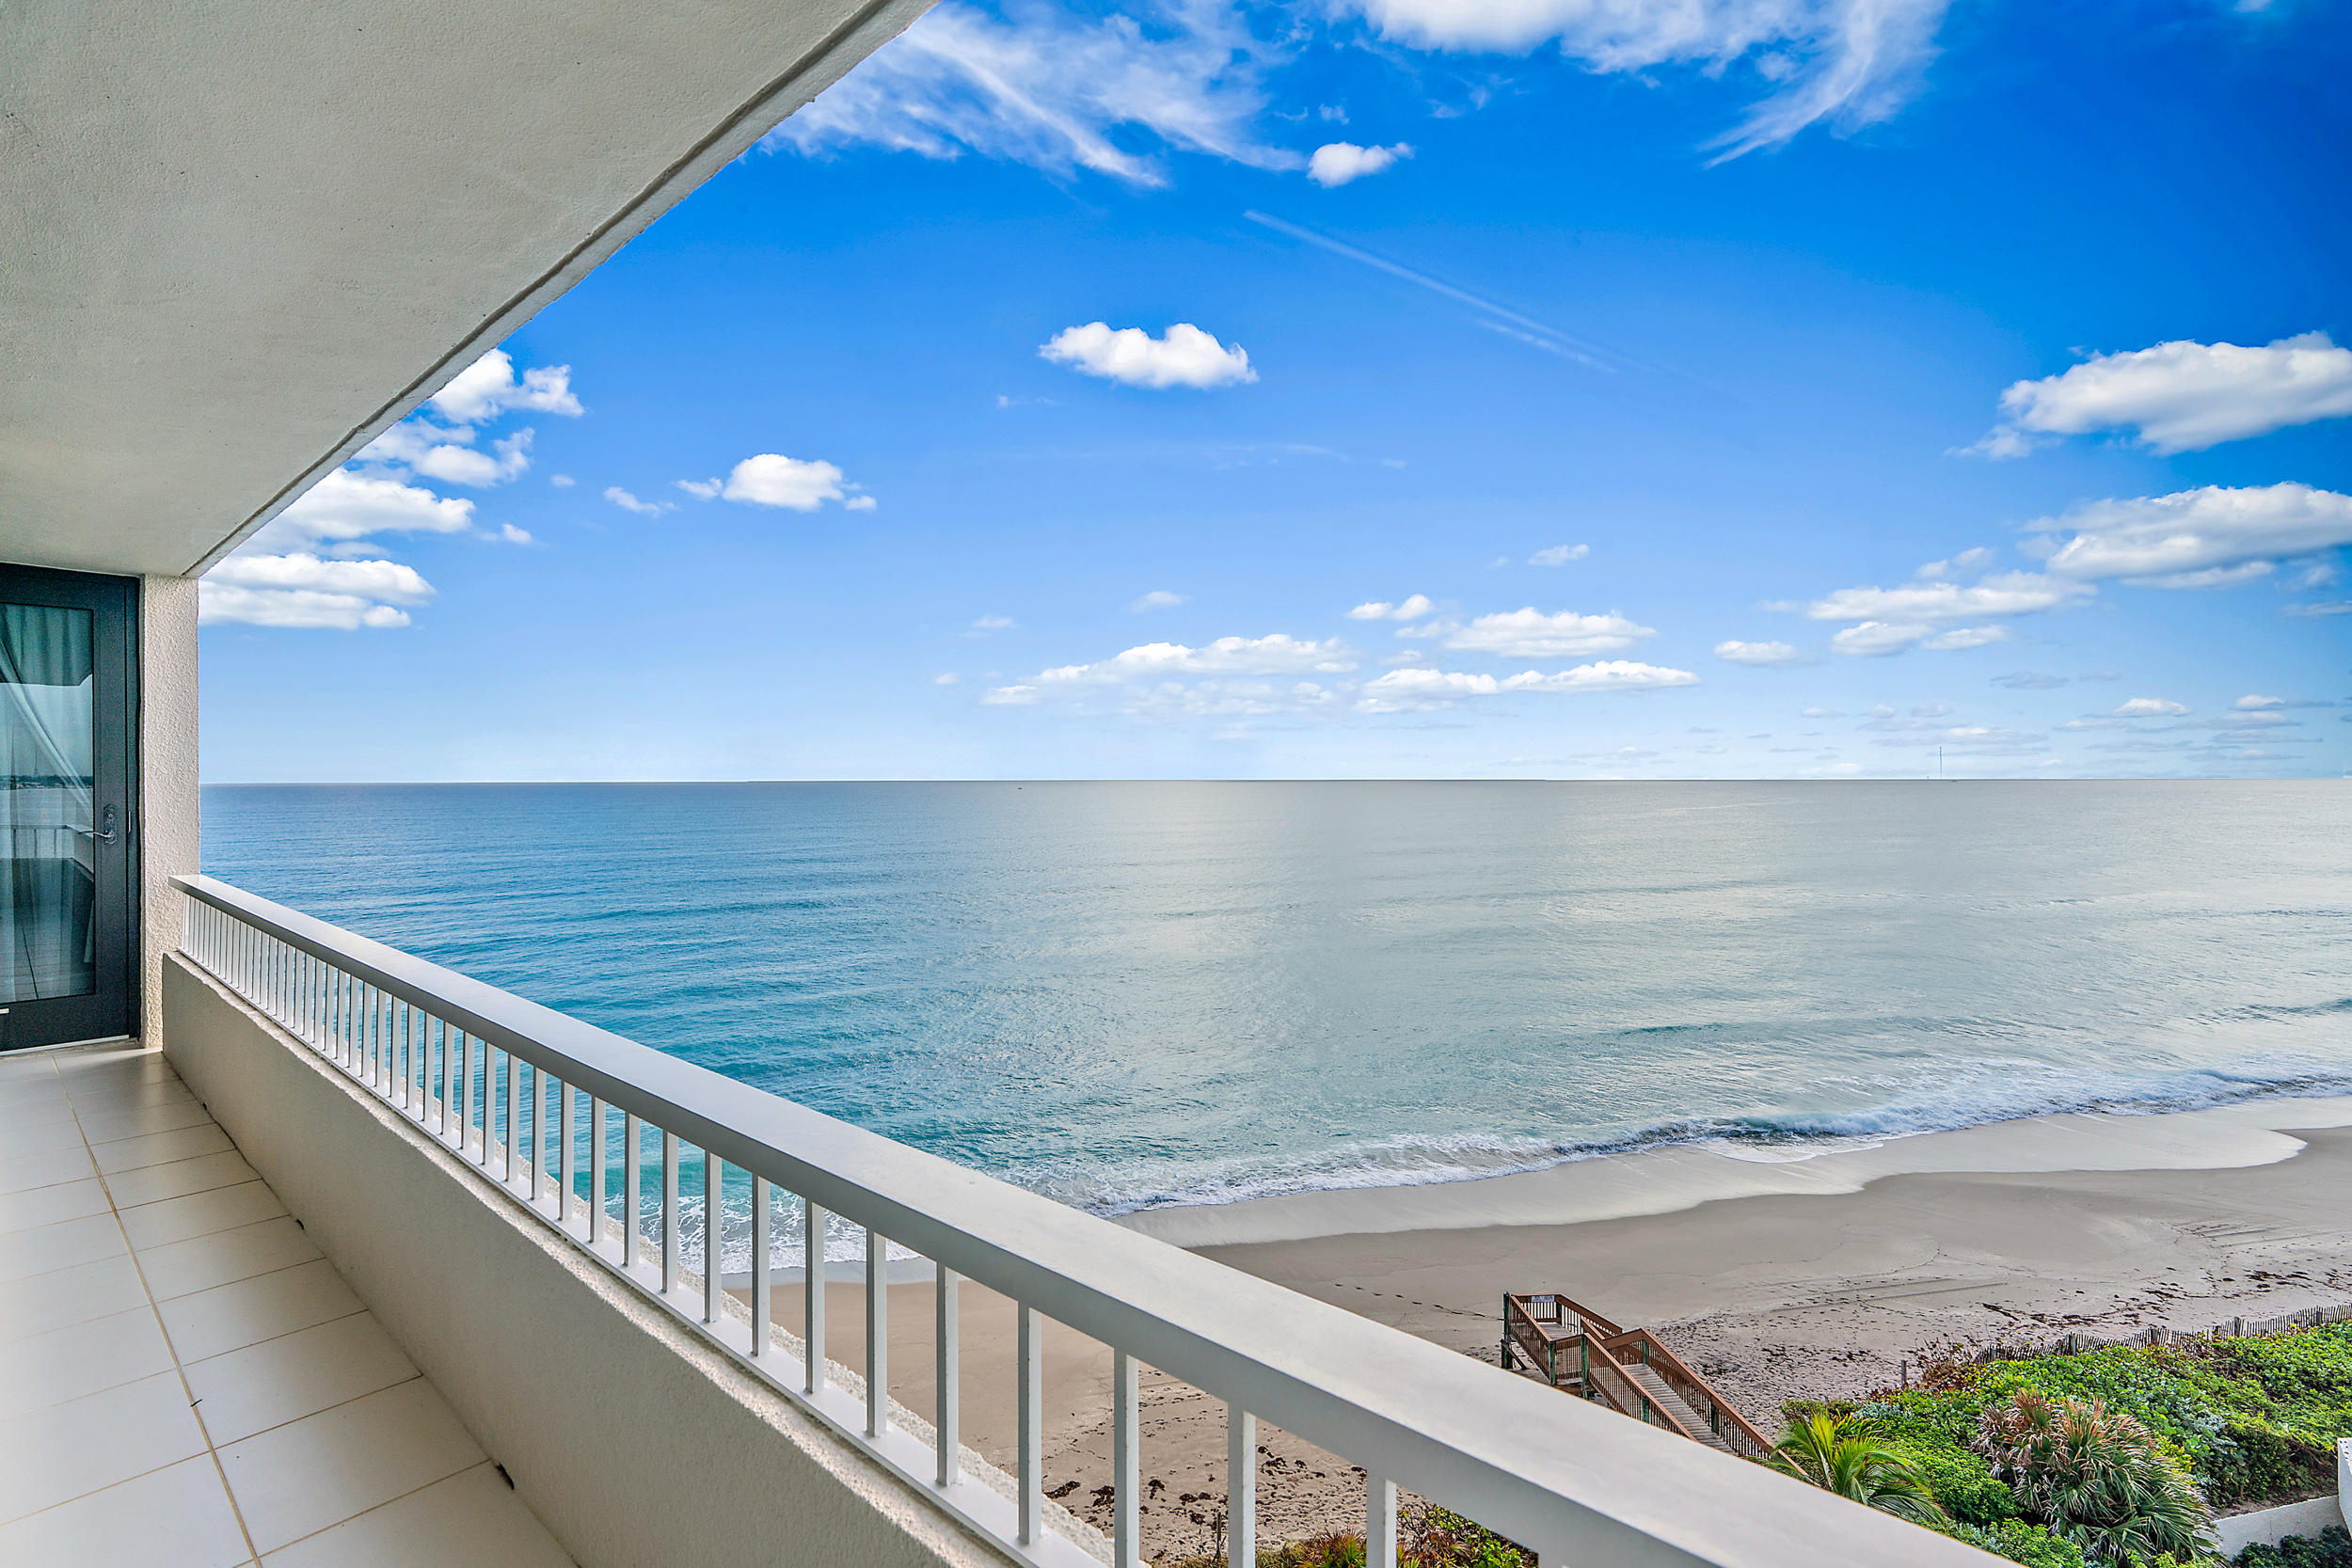 New Home for sale at 5540 Ocean Drive in Singer Island